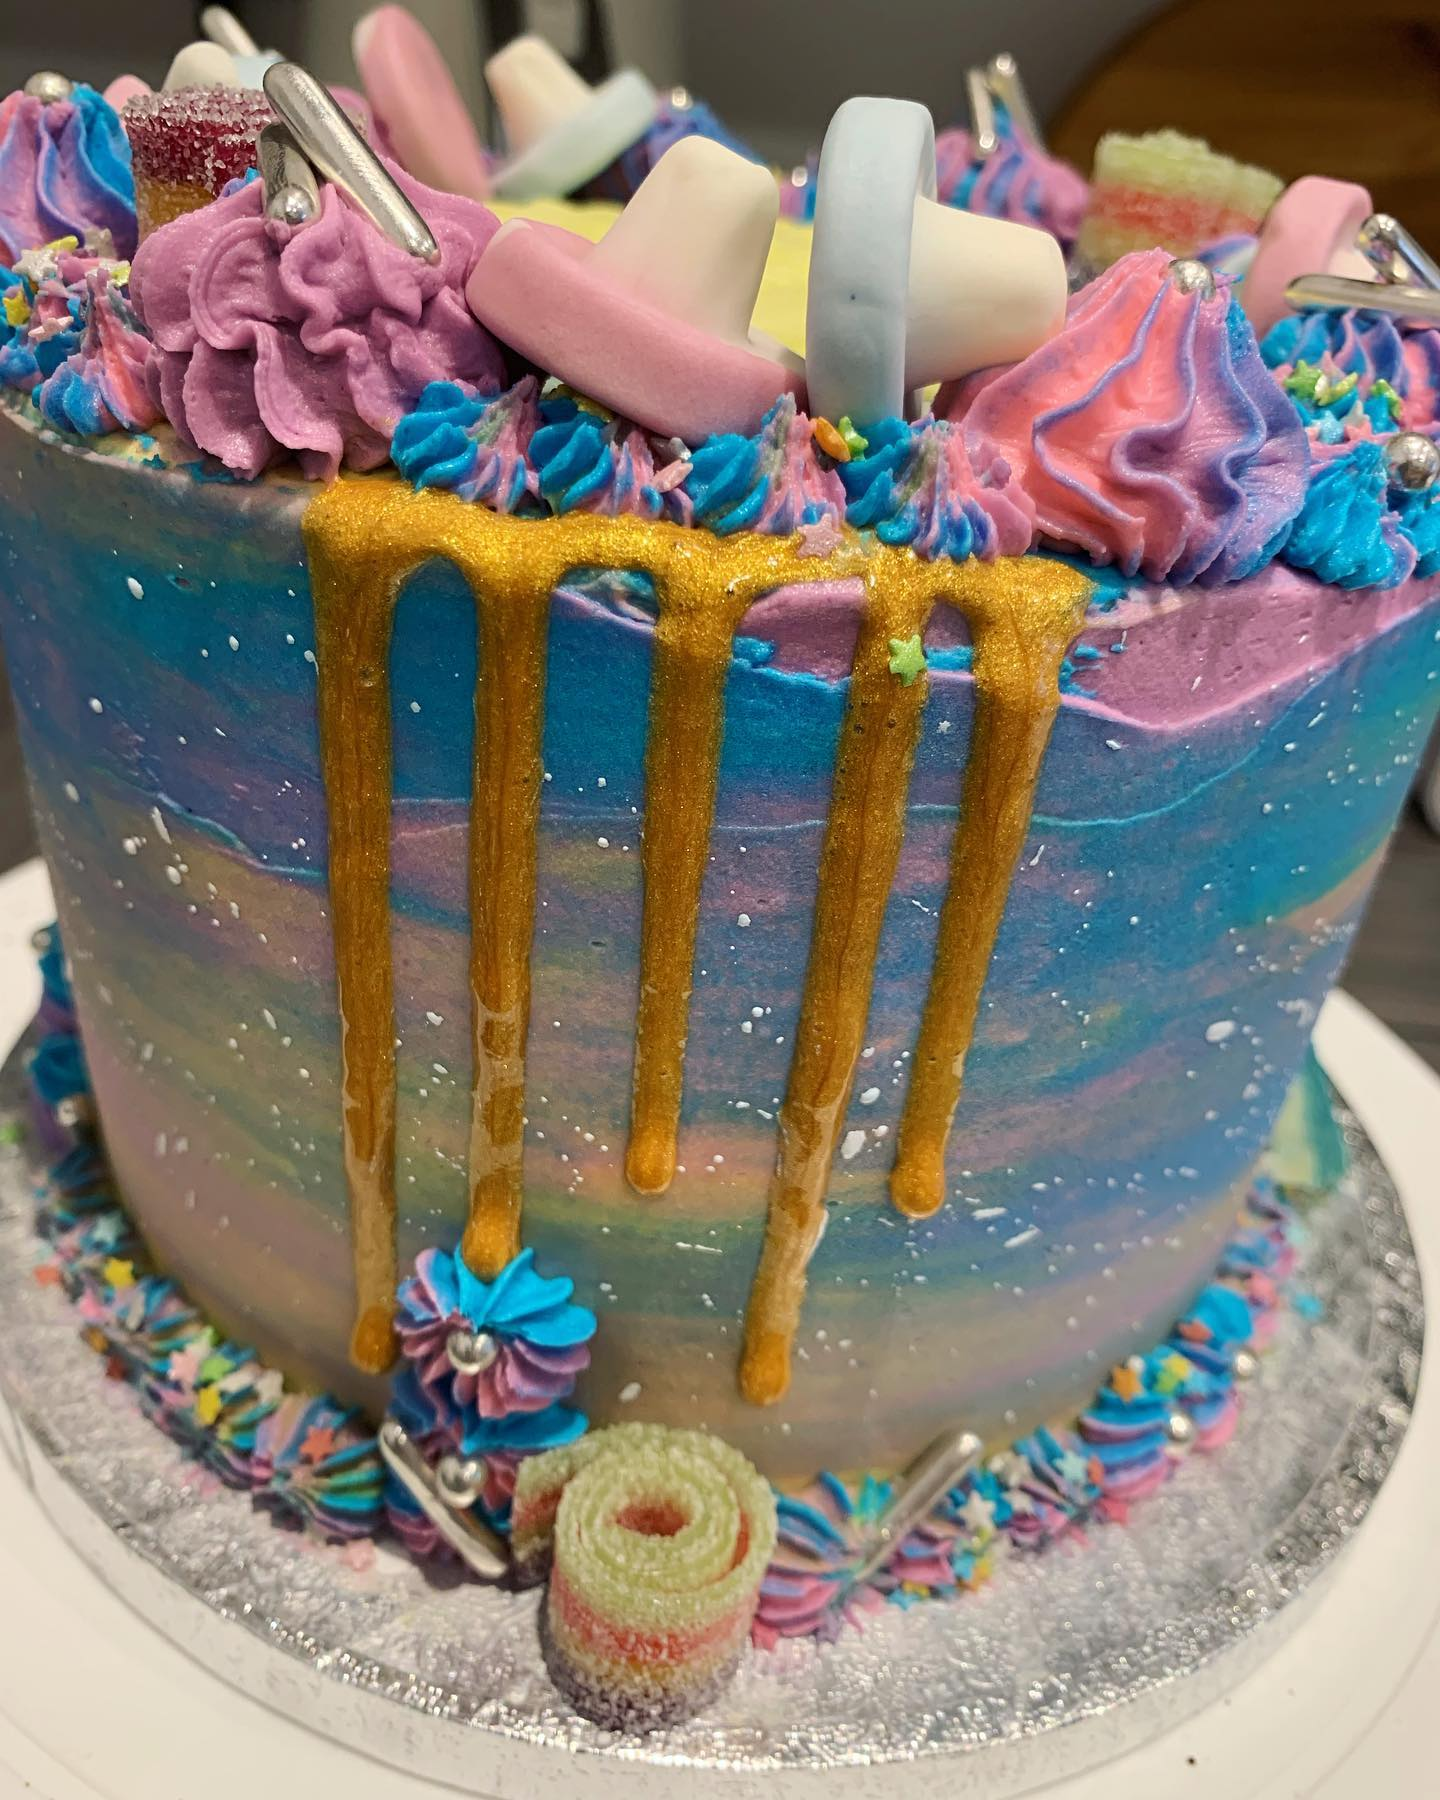 Space themed cake_LHK